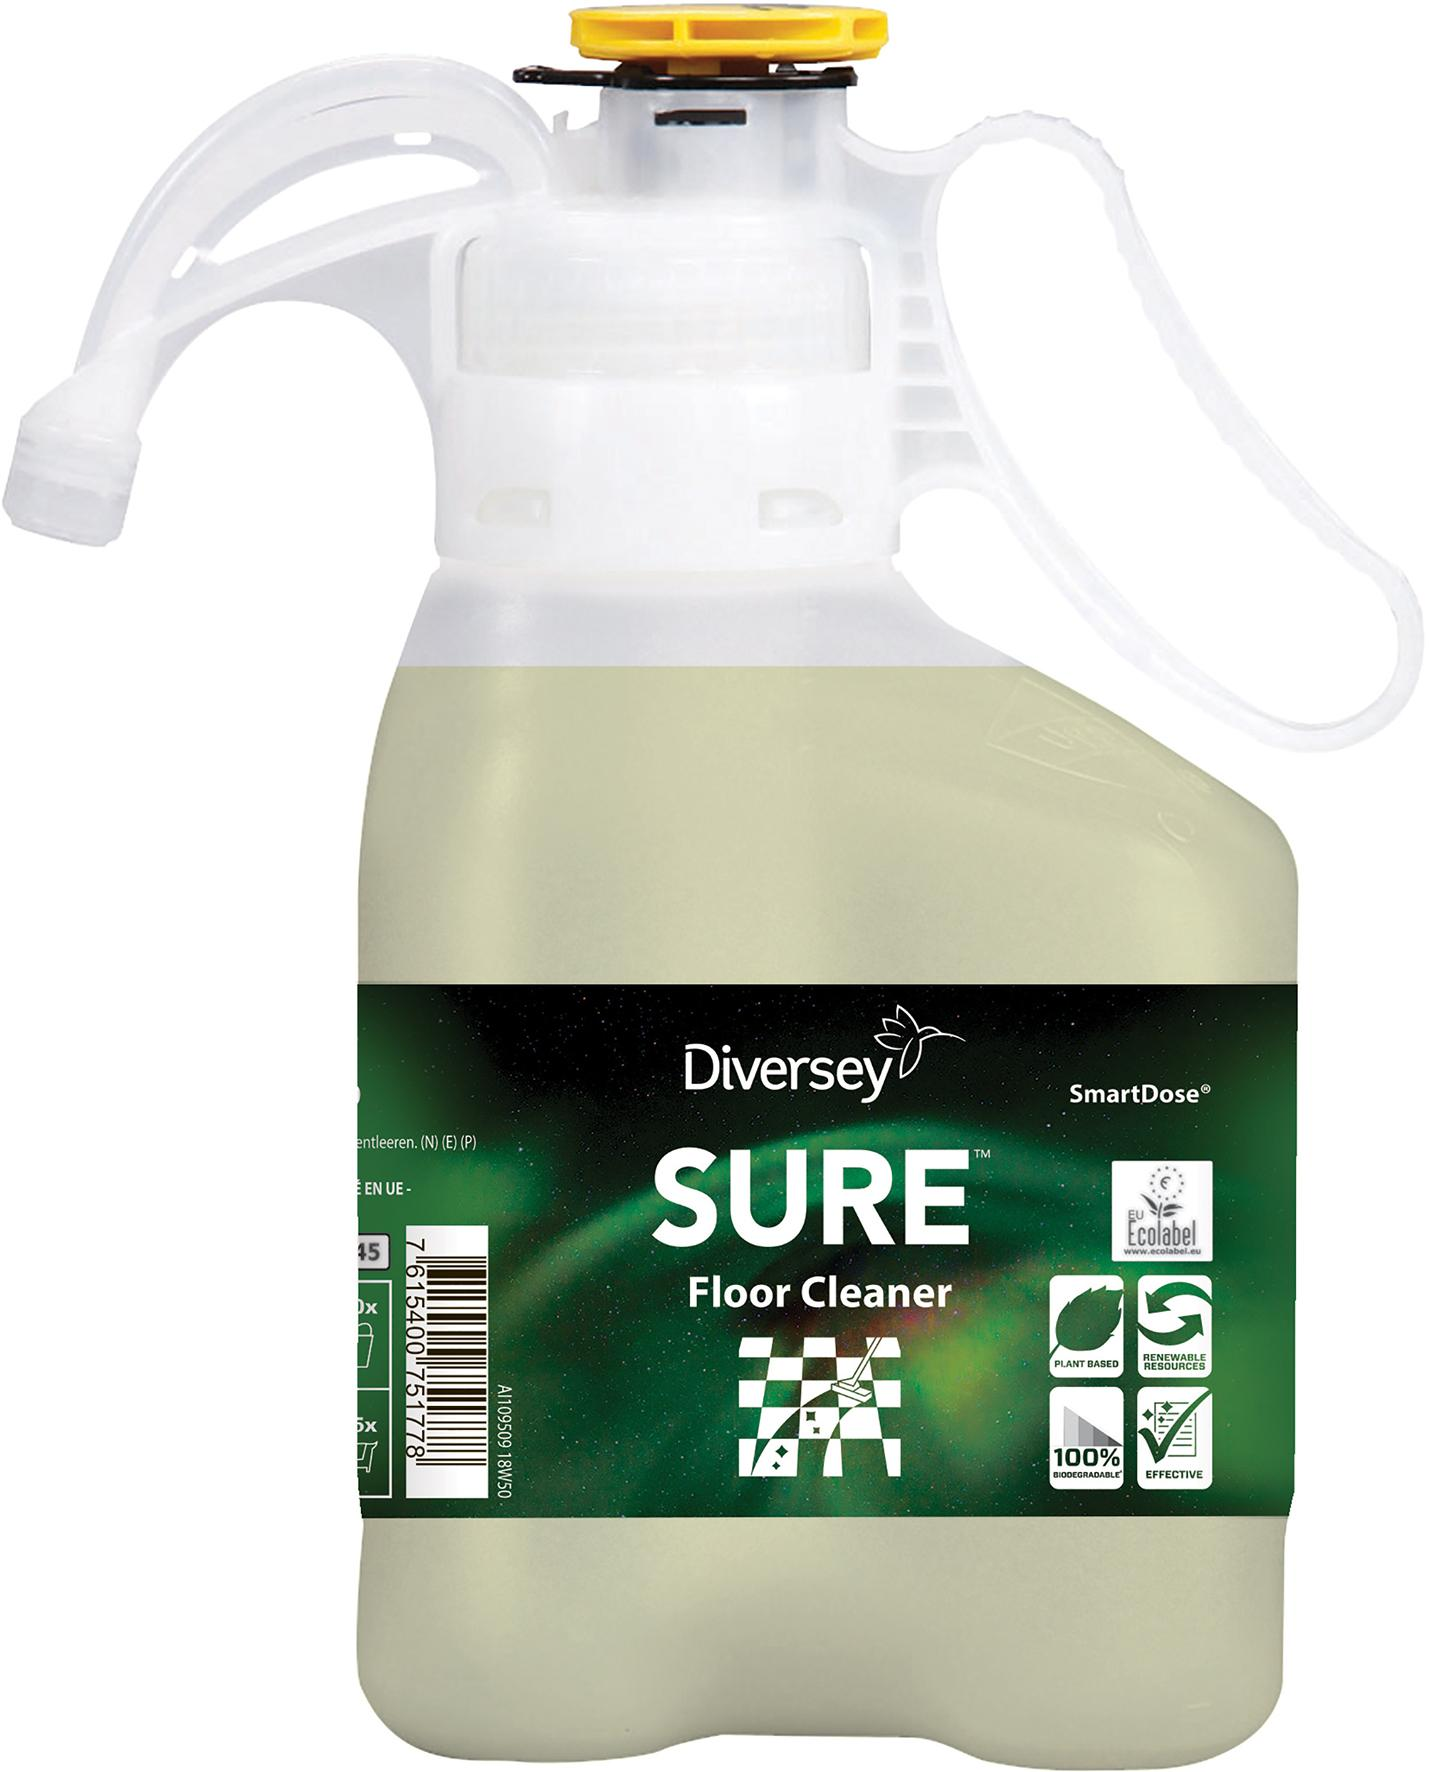 SmartDose SURE Floor Cleaner 1,4l